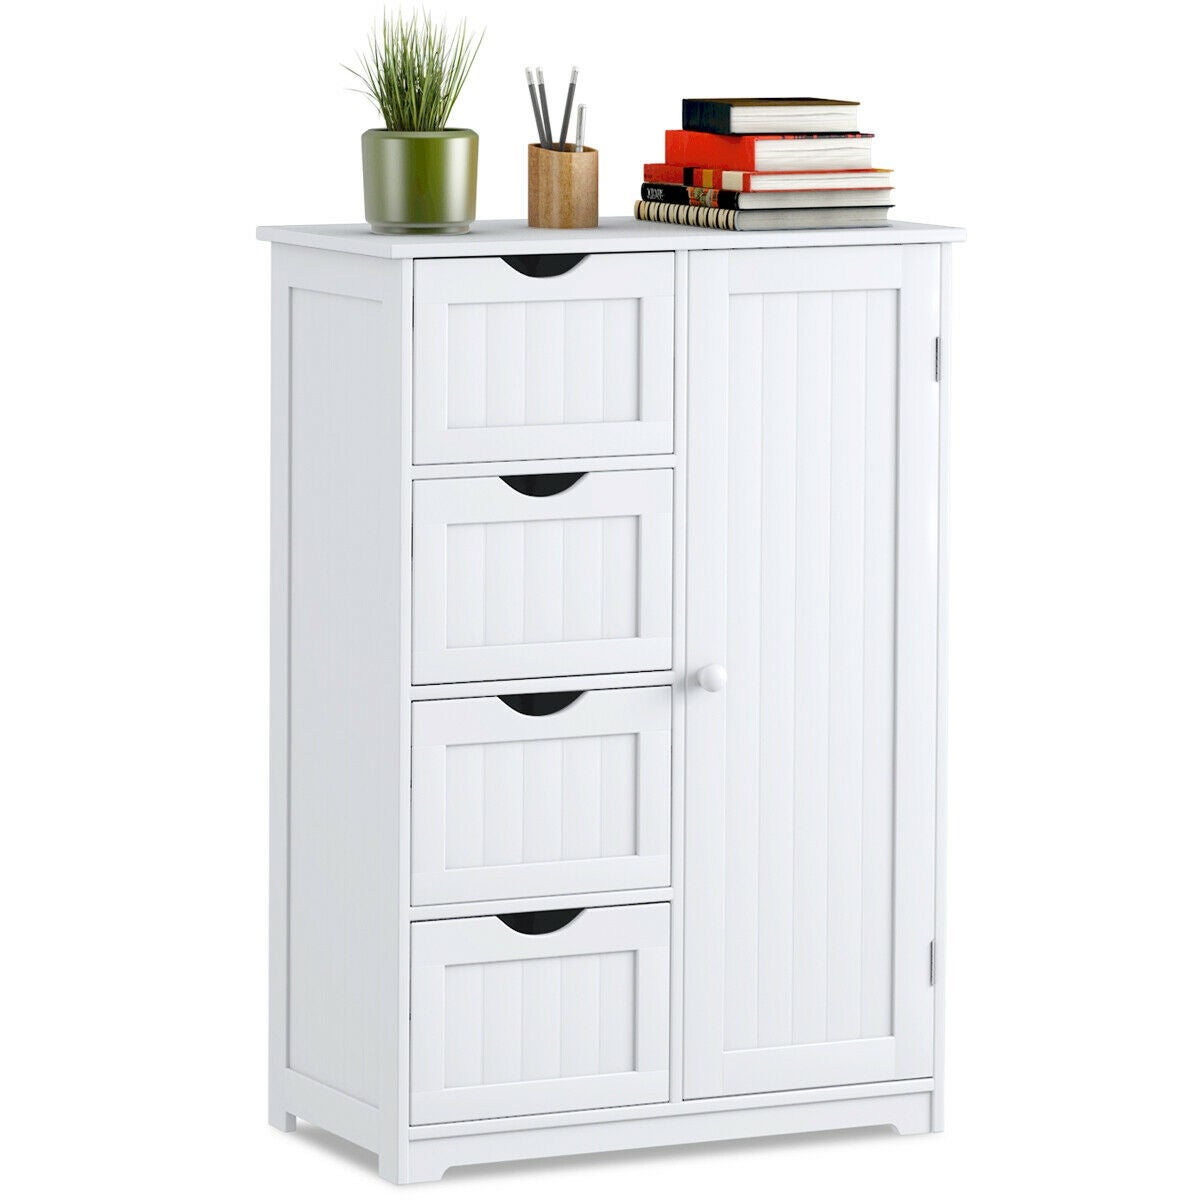 Costway Wooden 4 Drawer Bathroom Cabinet Storage Cupboard 2 Shelves Free Standing White within proportions 1200 X 1200